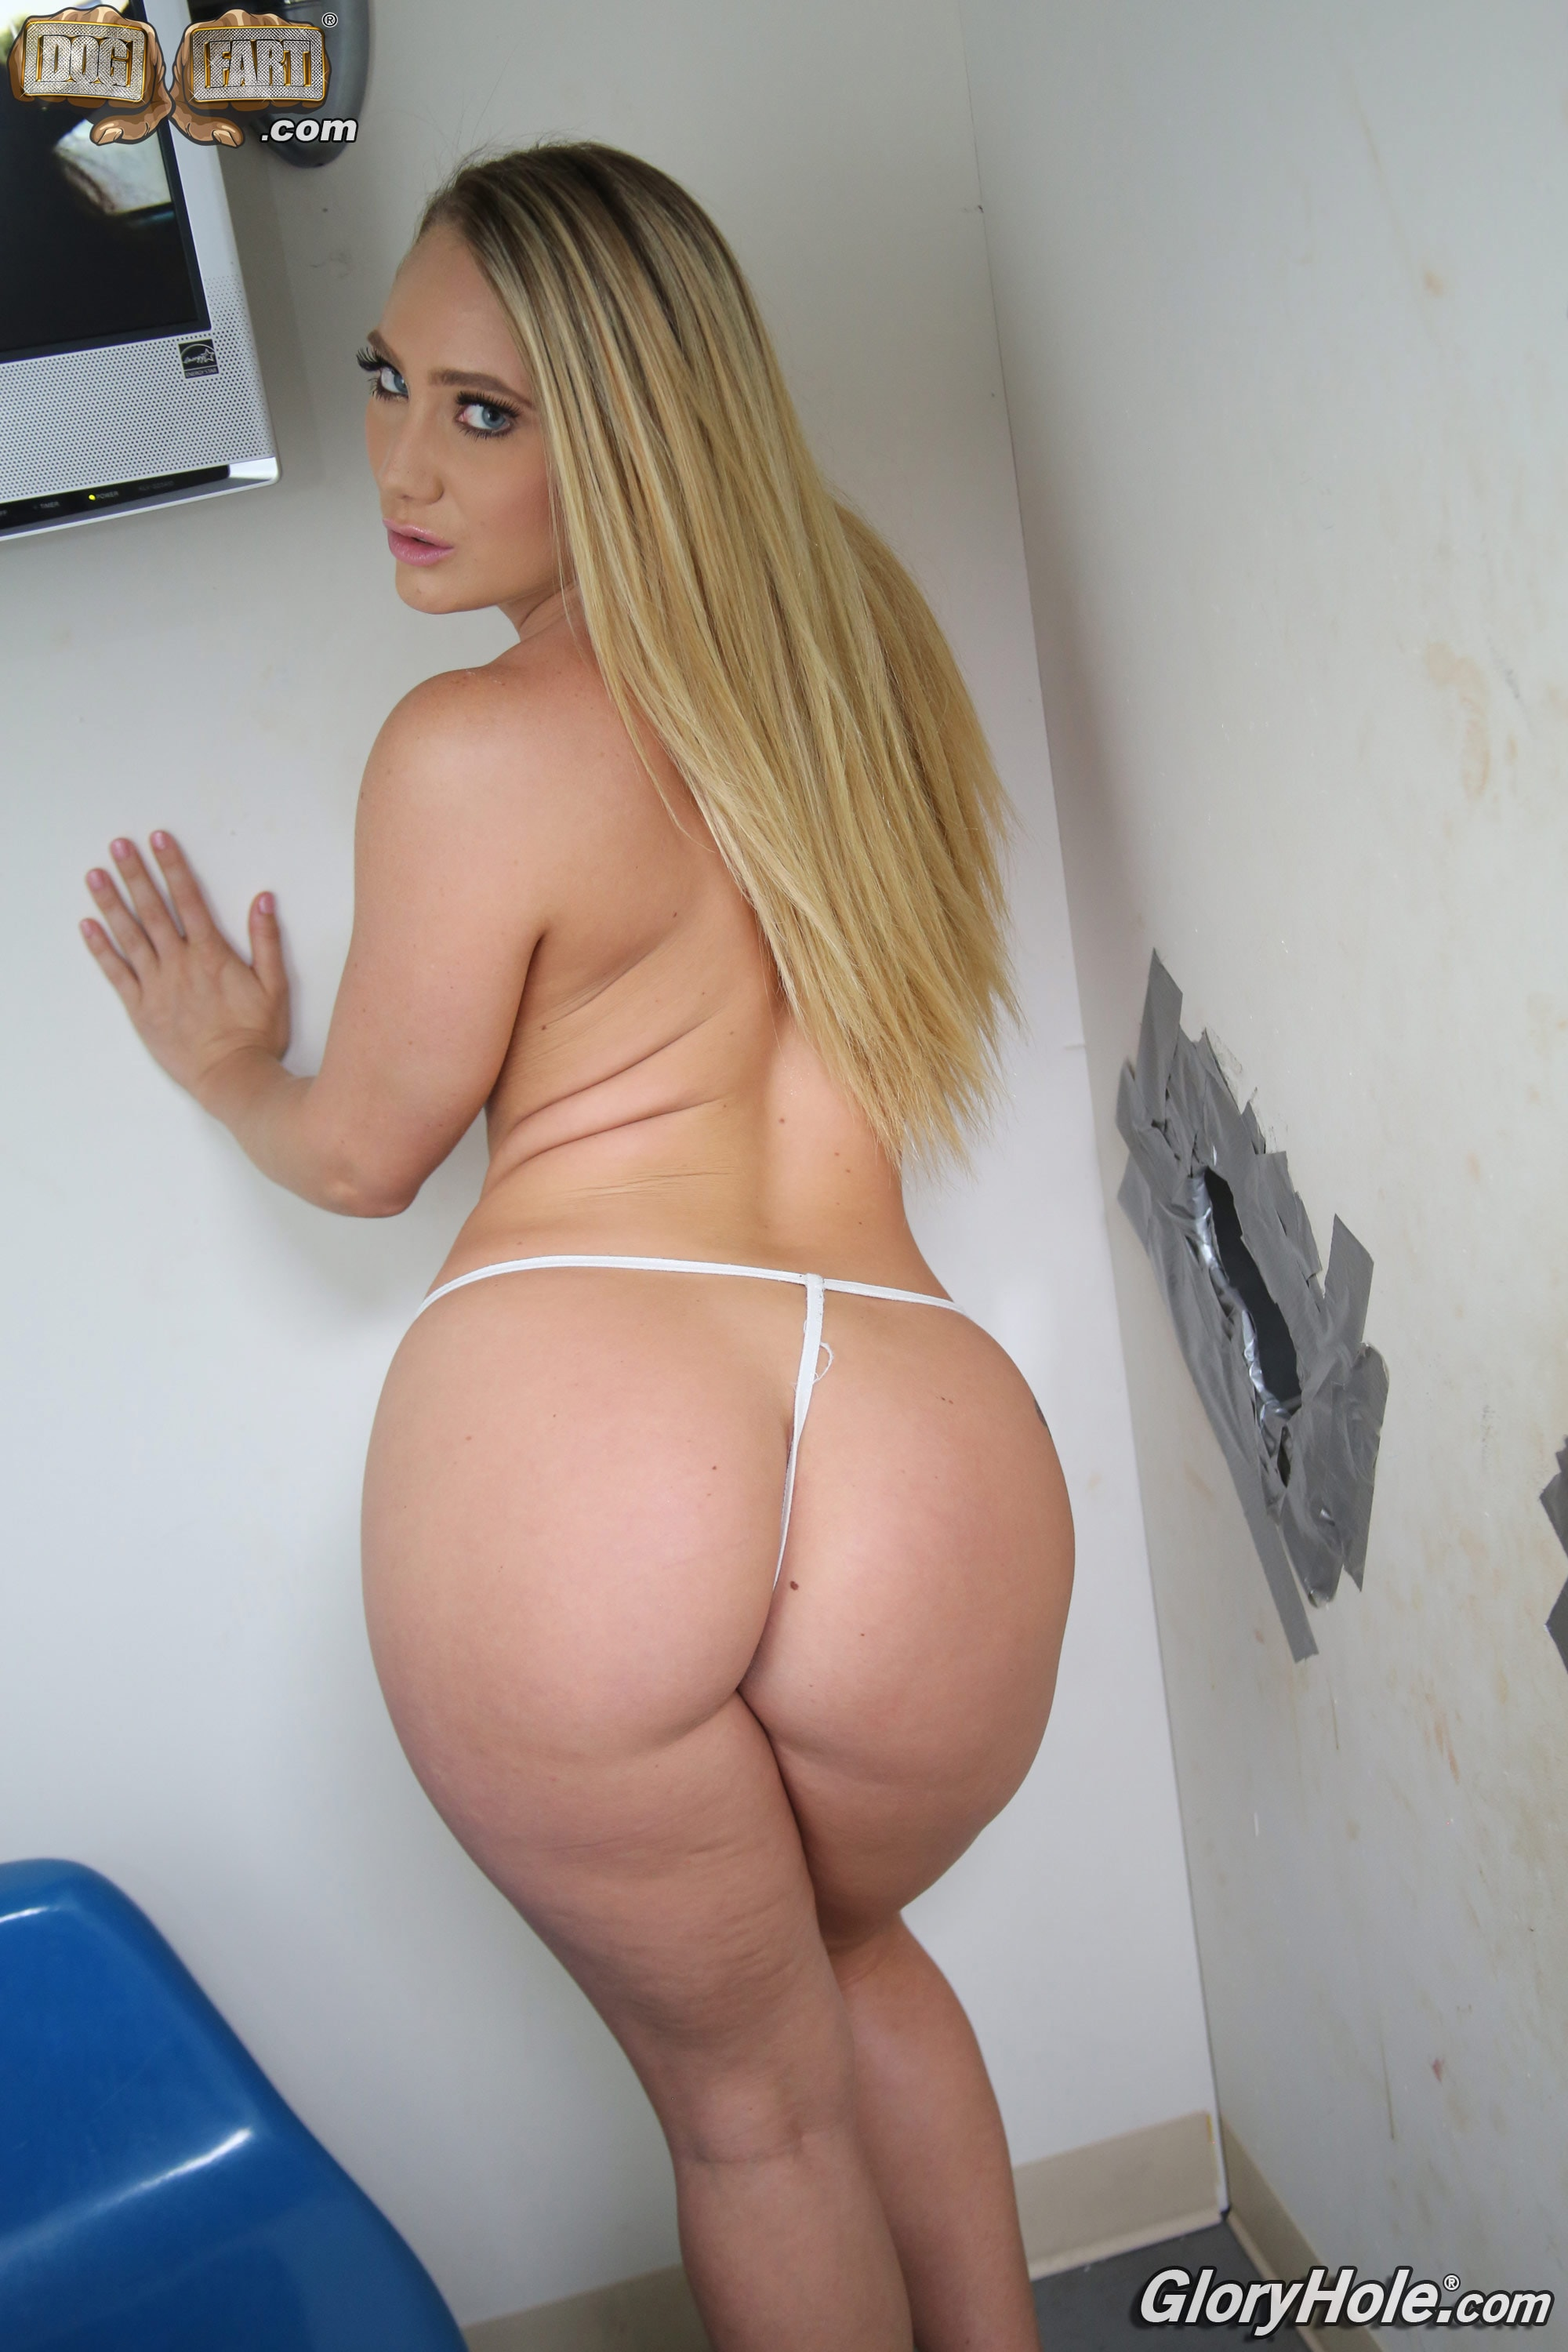 ▷ Aj Applegate in Aj Applegate - Glory Hole (Photo 9) | Dogfart